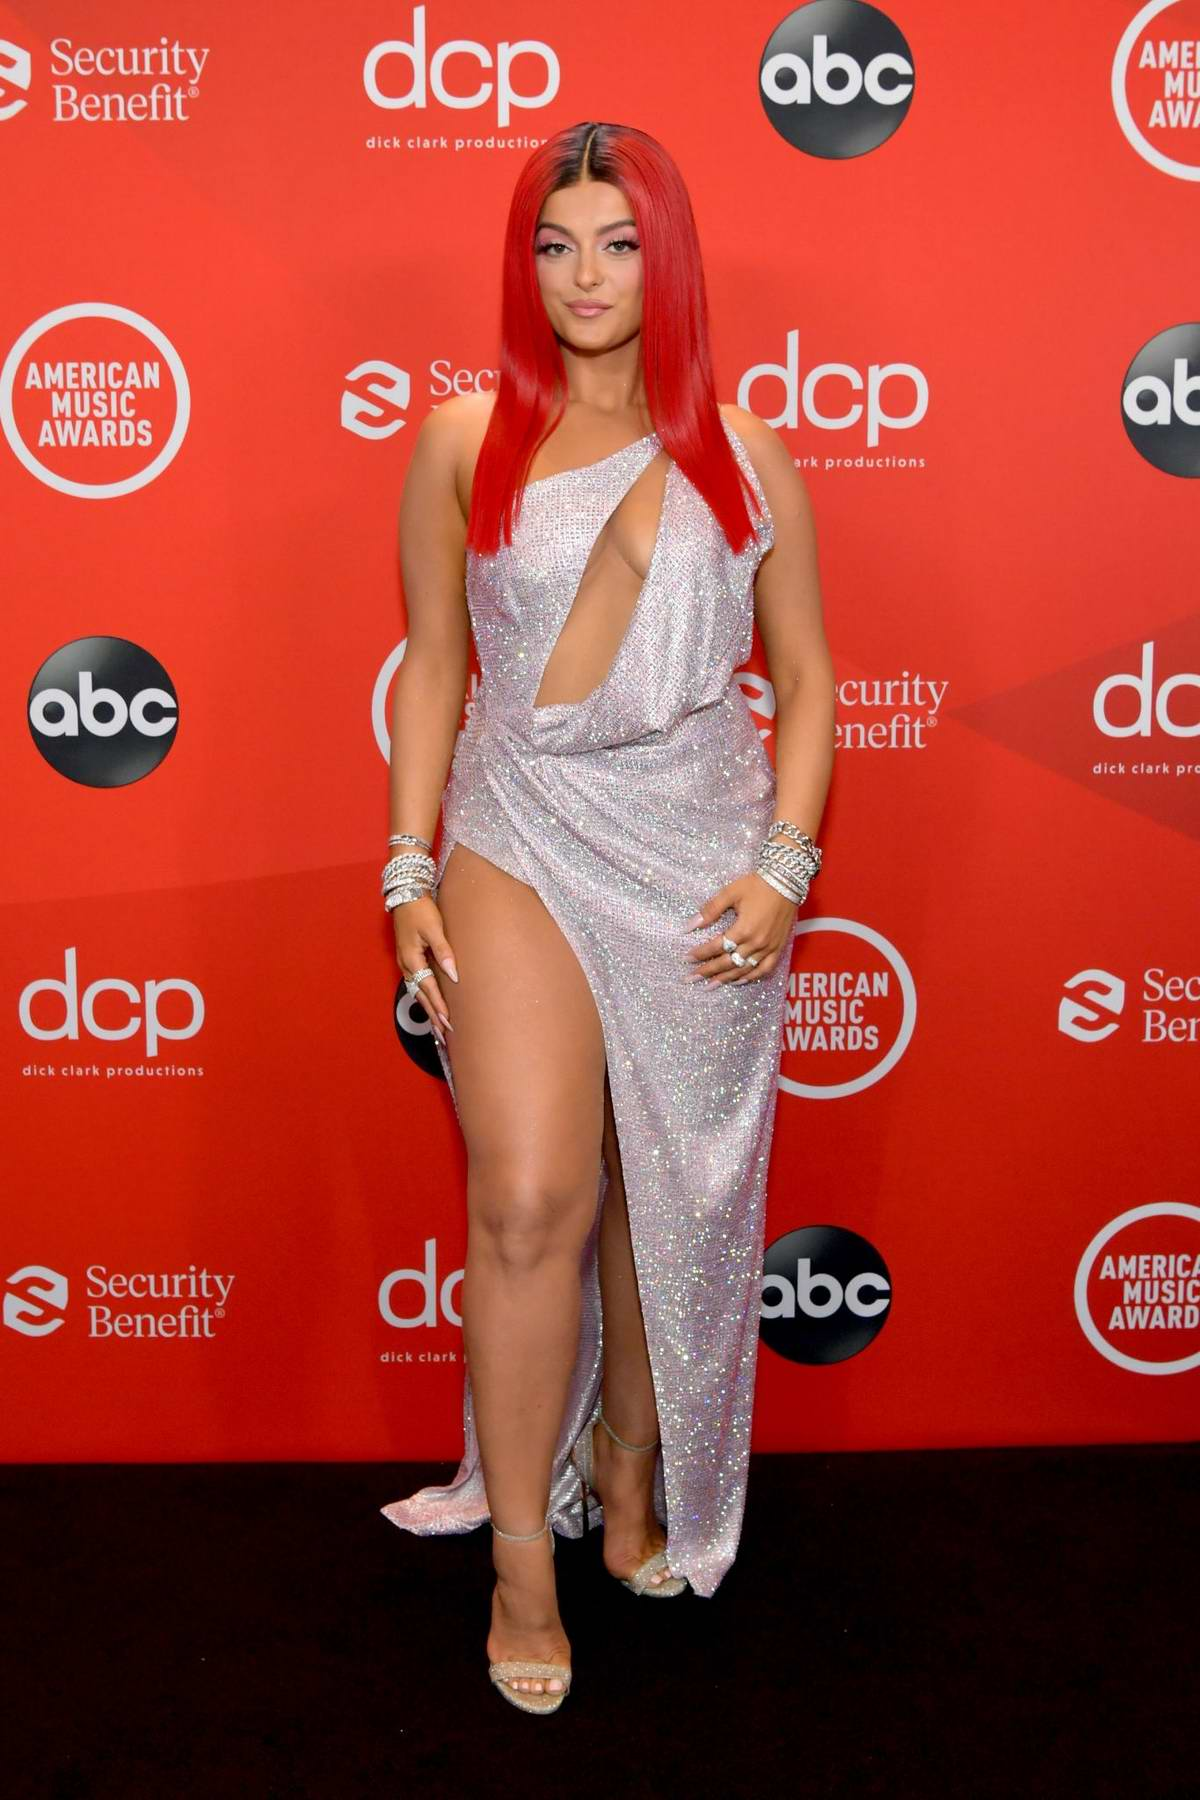 Bebe Rexha attends the 2020 American Music Awards at the Microsoft Theater in Los Angeles